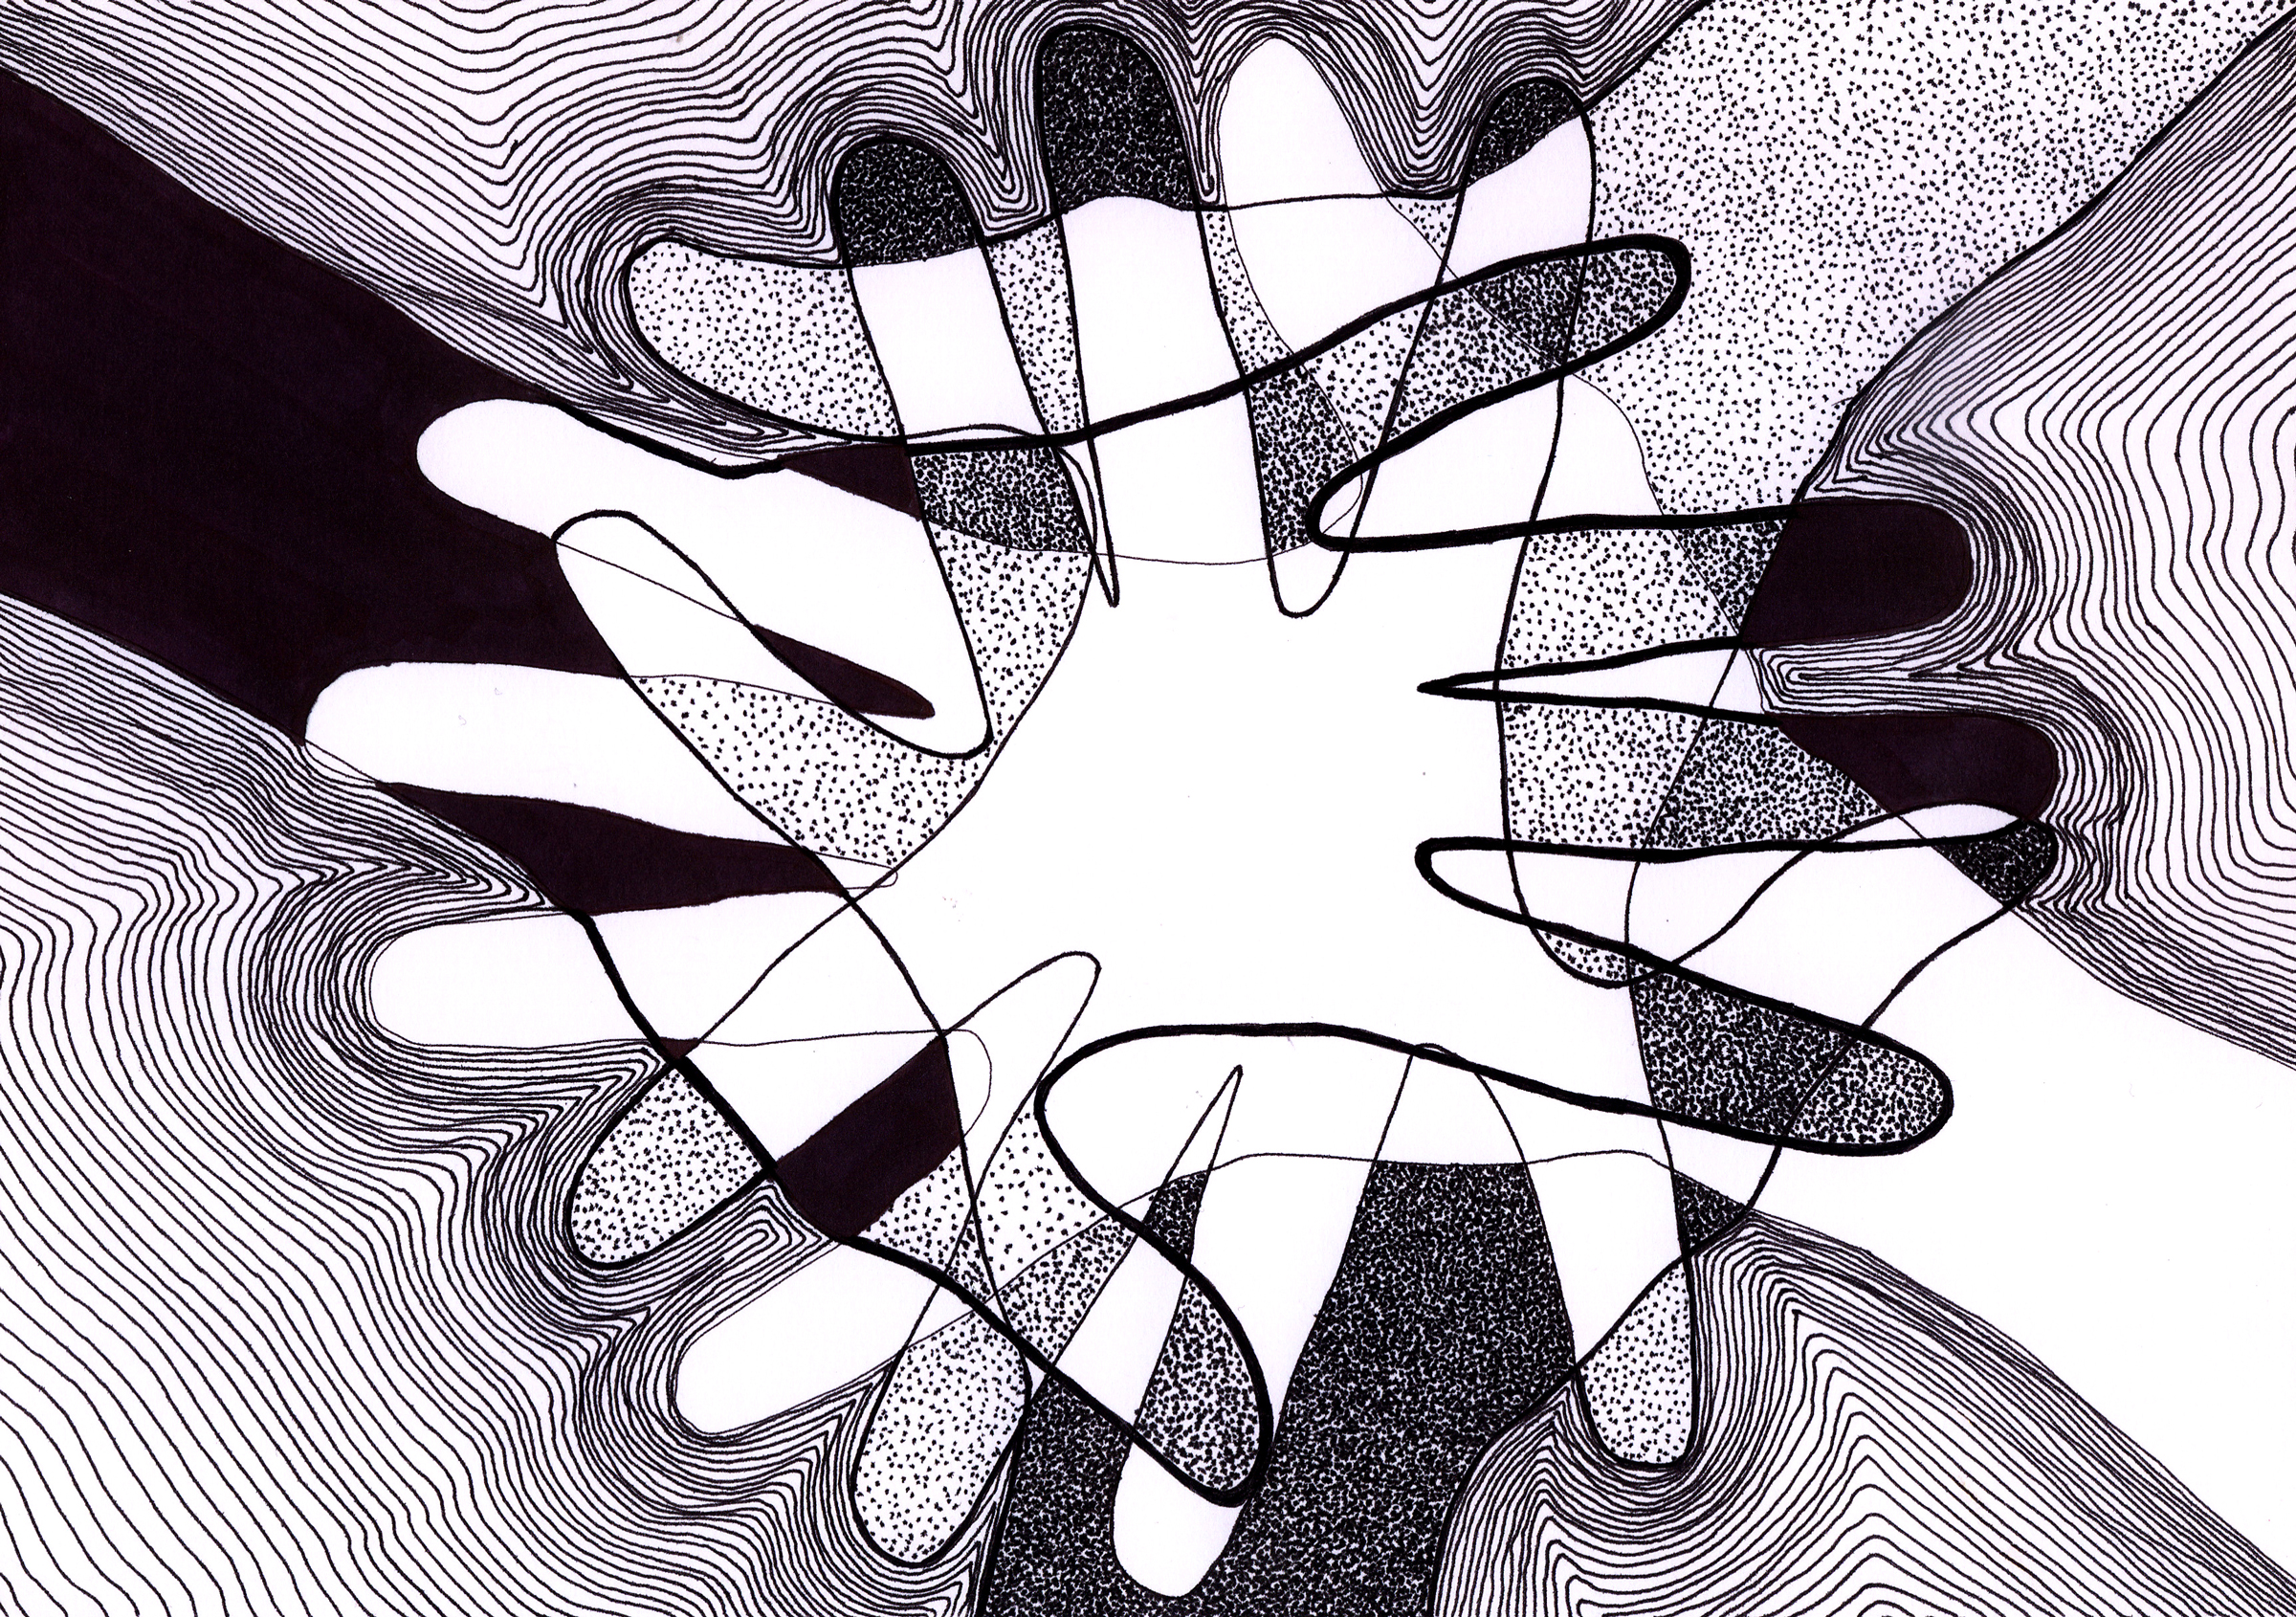 black and white line illustration of overlapping hands